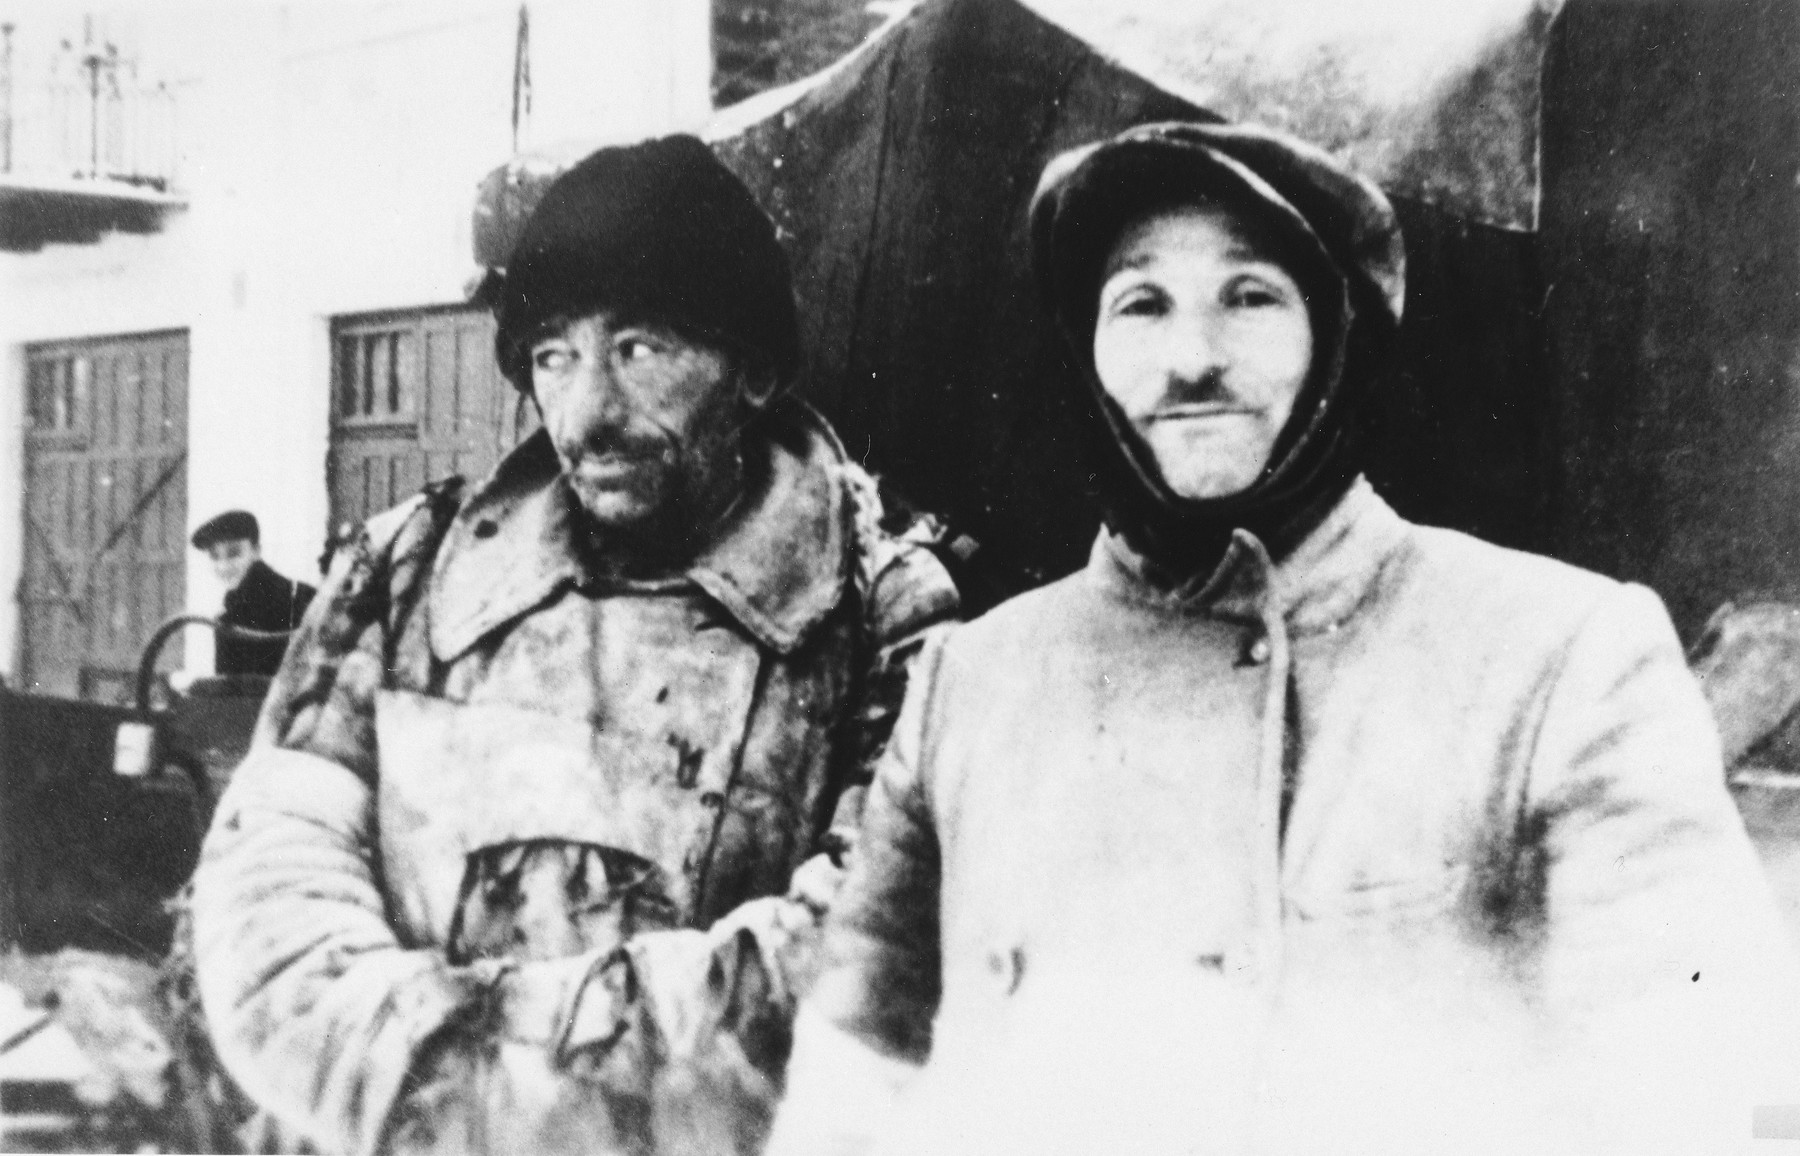 Close-up of two Jewish men wearing overcoats on a street in an unidentified ghetto.